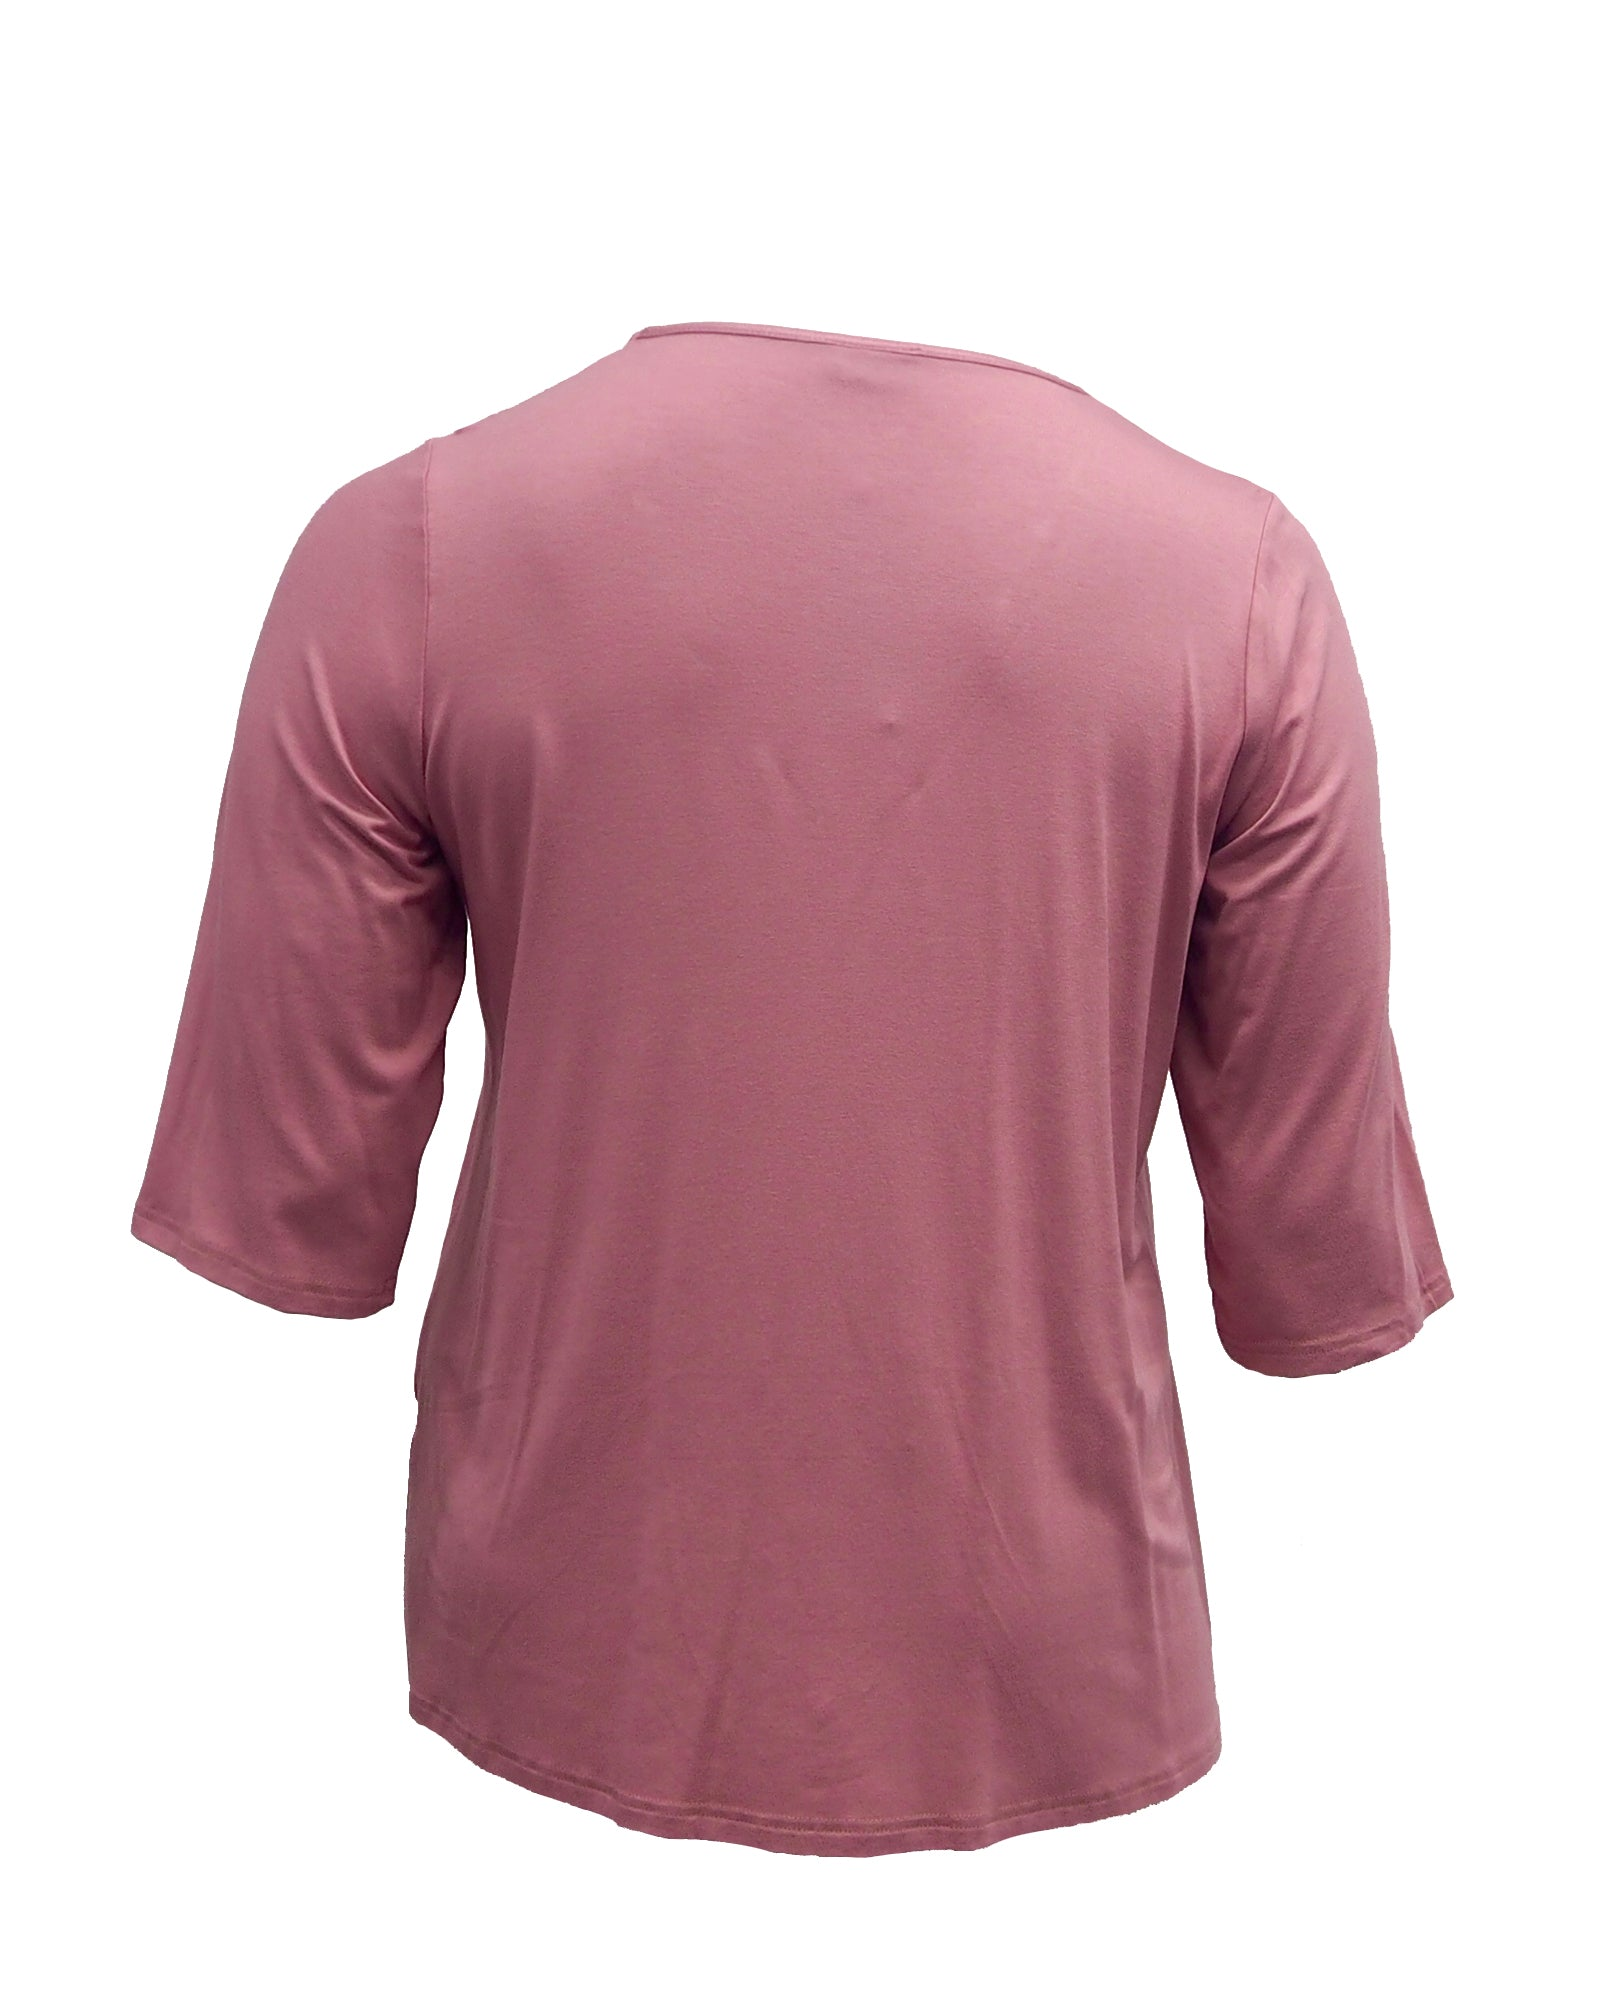 Plus size top pink